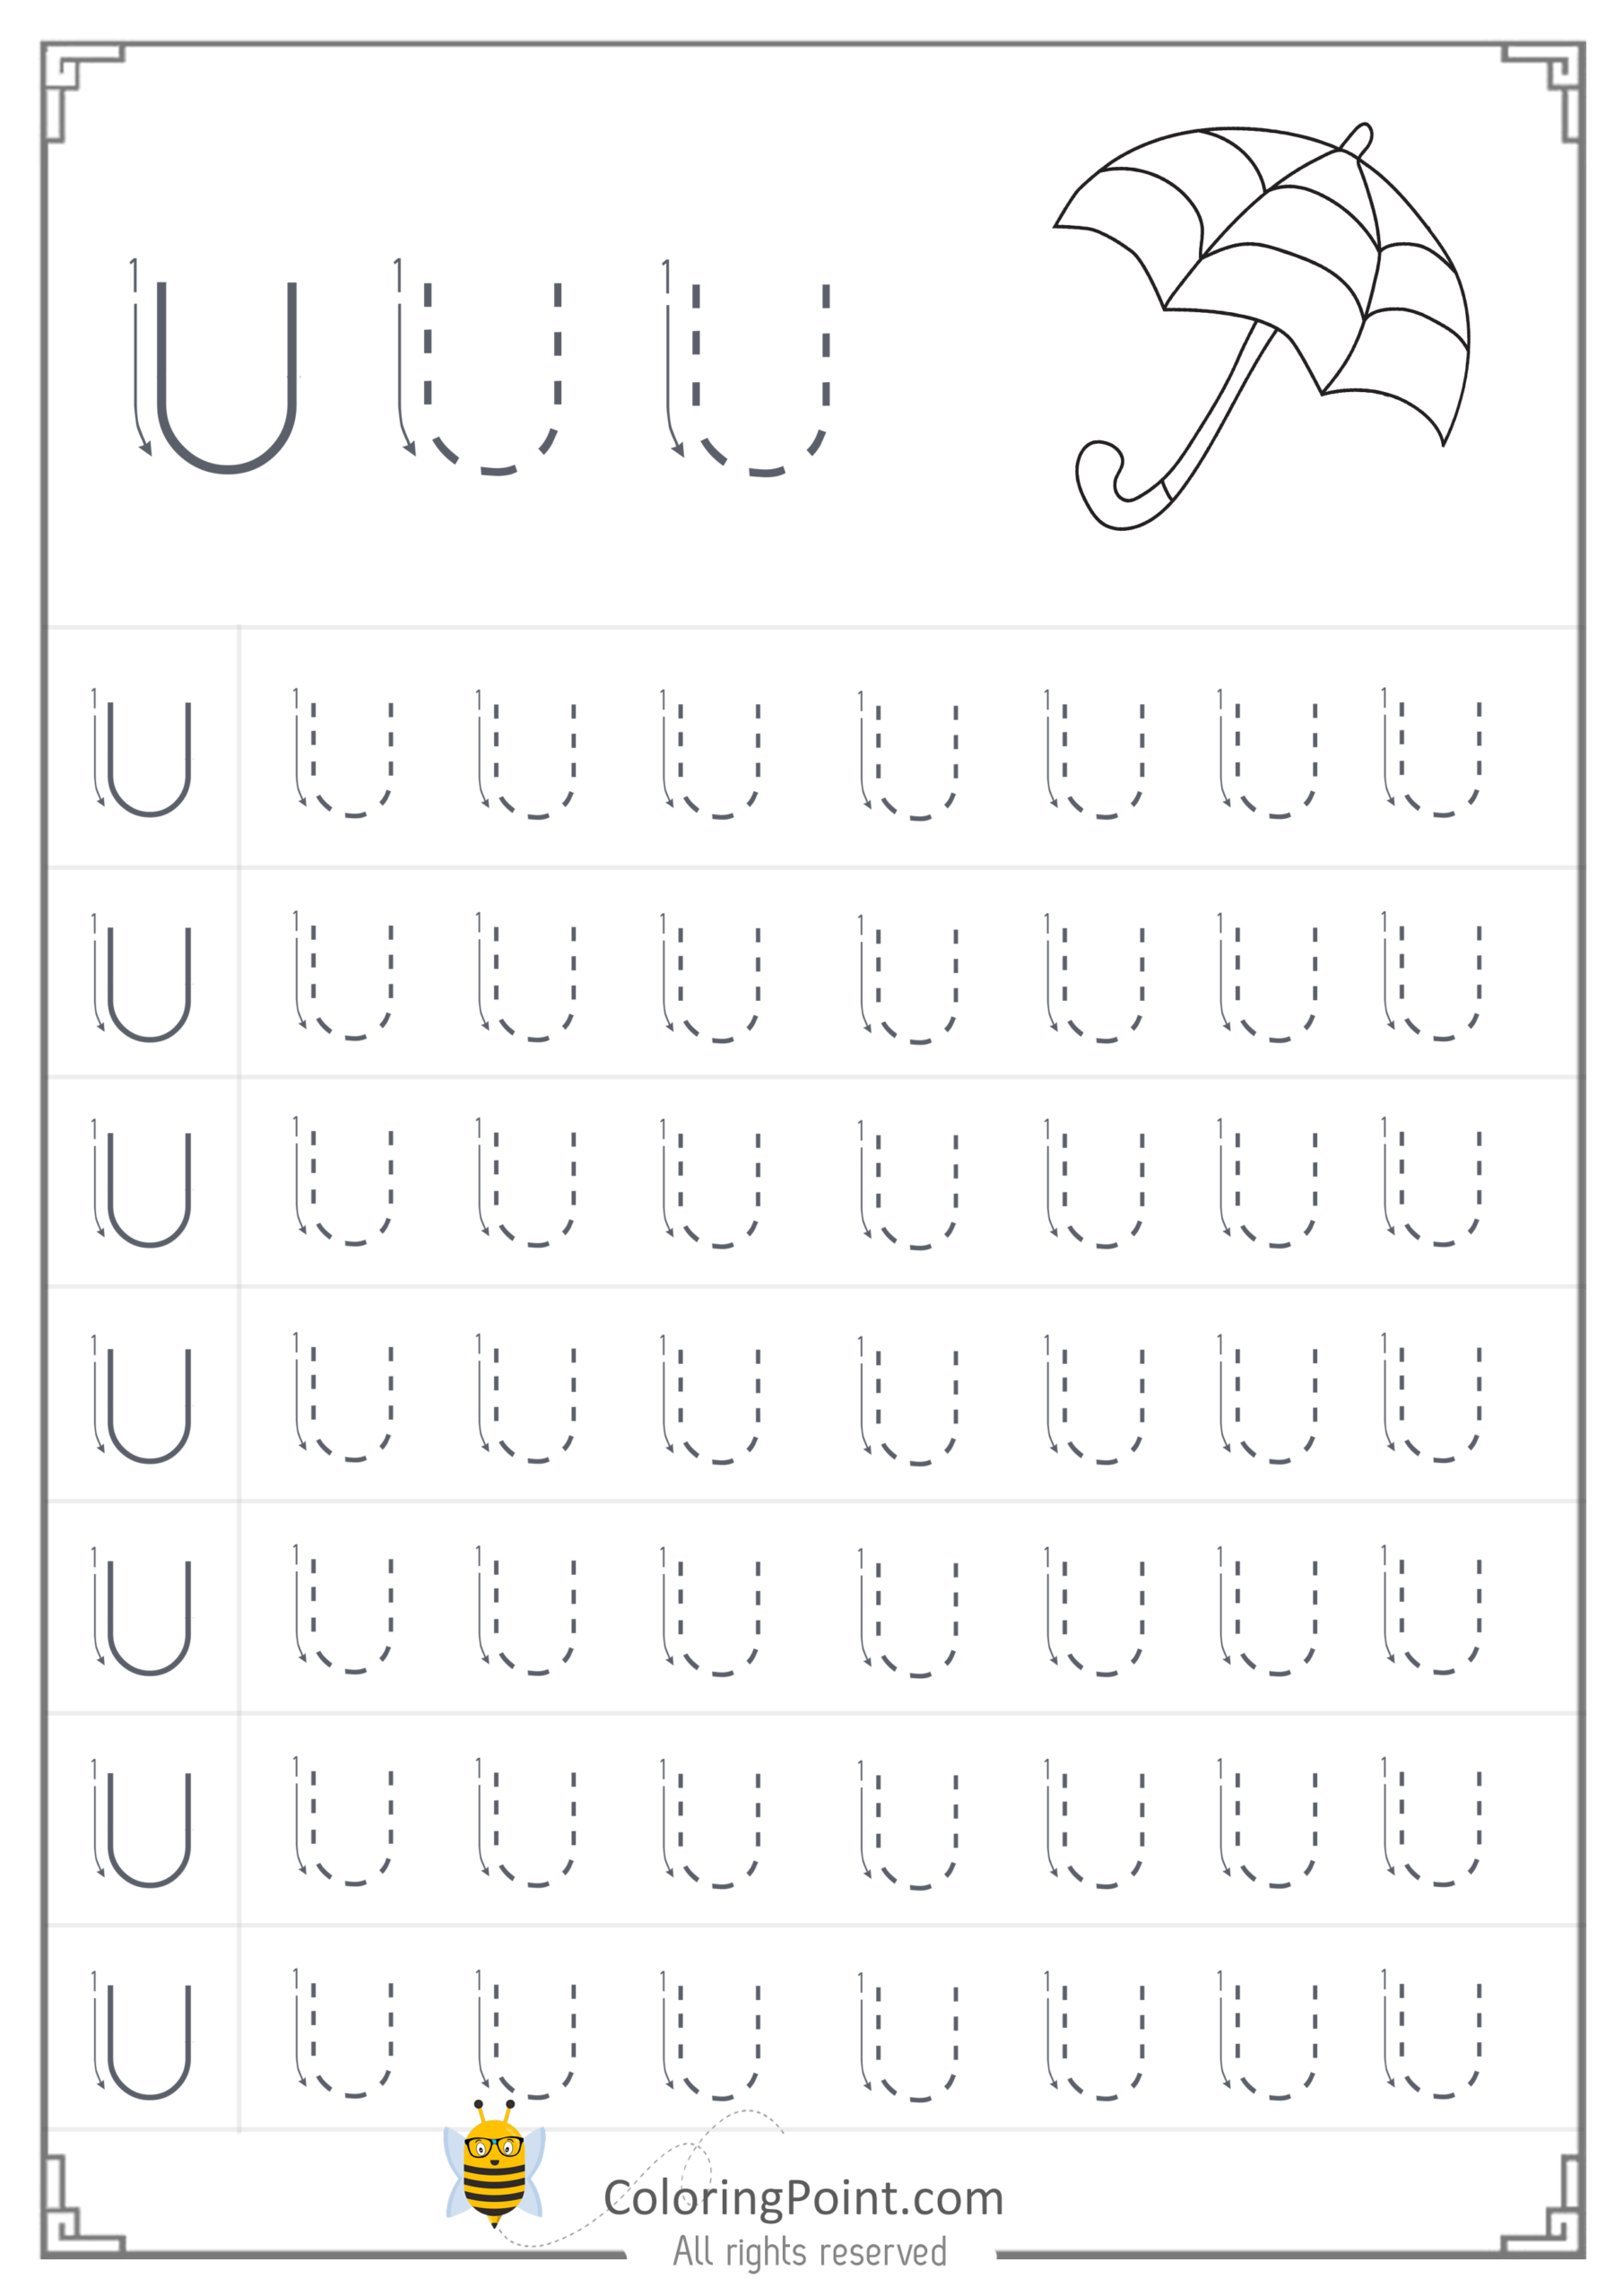 Free Printable Tracing Letter U Worksheets Preschool for Tracing Letter Worksheets Preschool Free